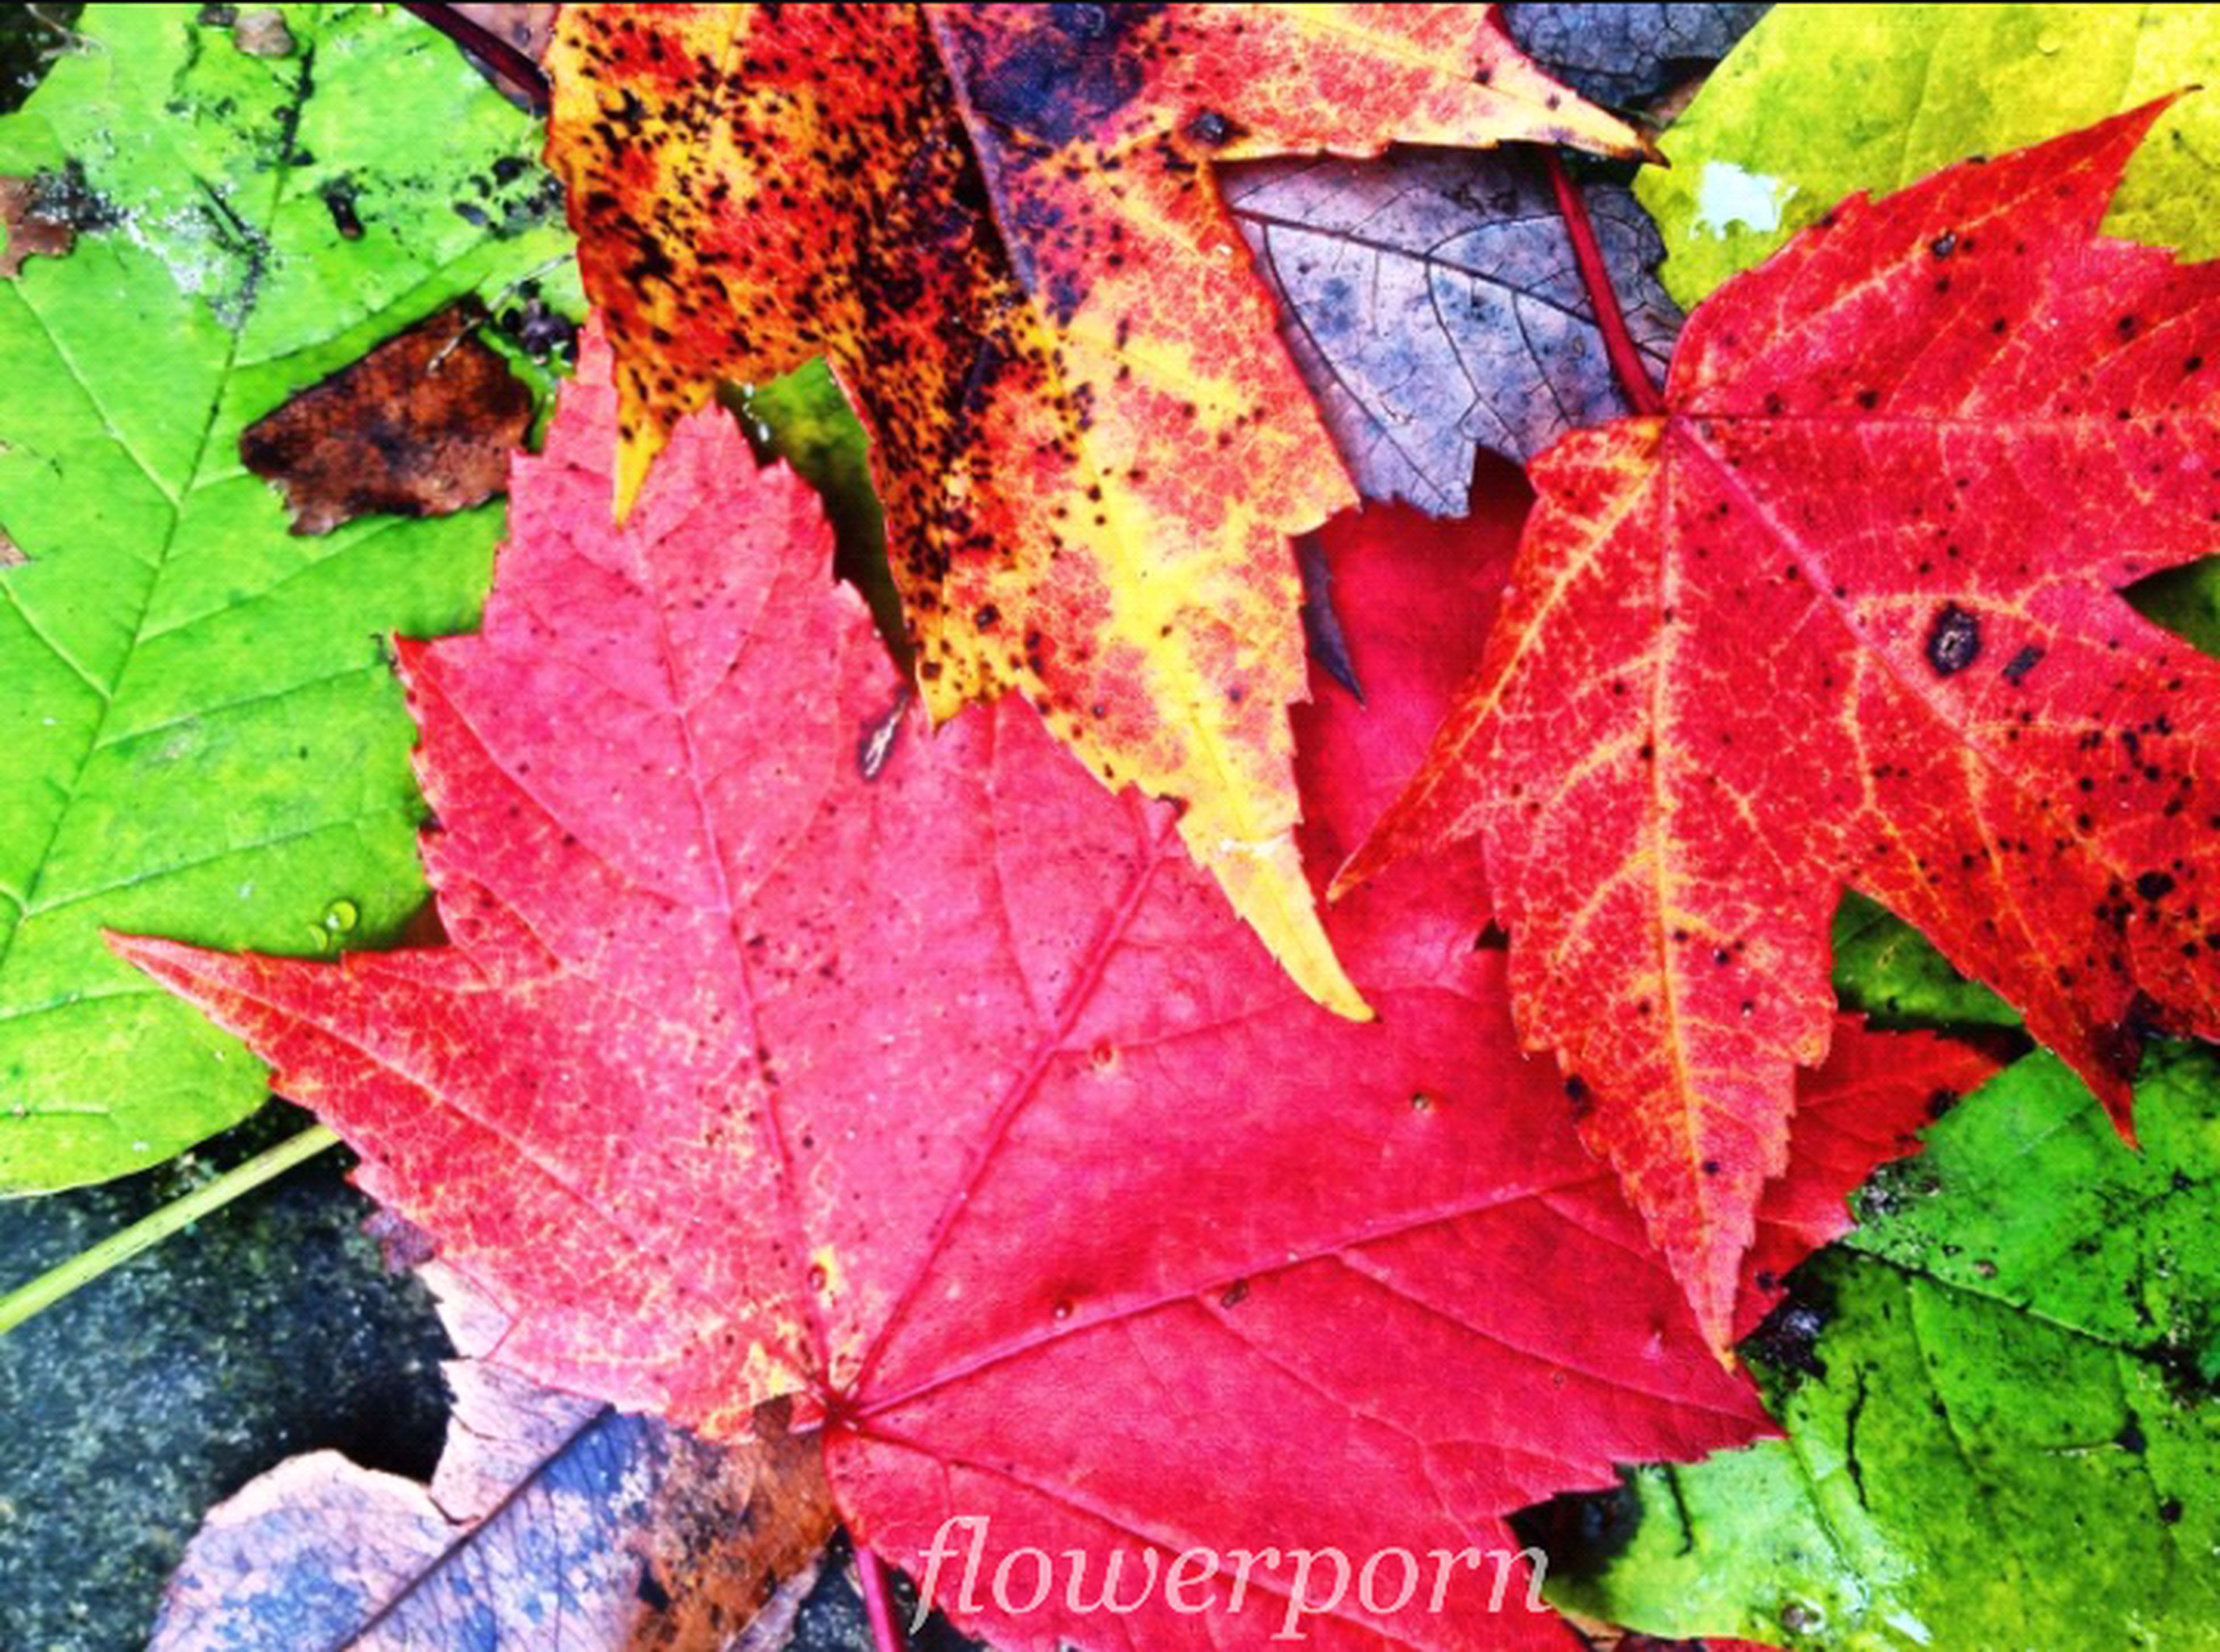 leaf, autumn, change, season, leaf vein, leaves, maple leaf, close-up, natural pattern, full frame, backgrounds, dry, nature, natural condition, red, high angle view, beauty in nature, orange color, day, fallen